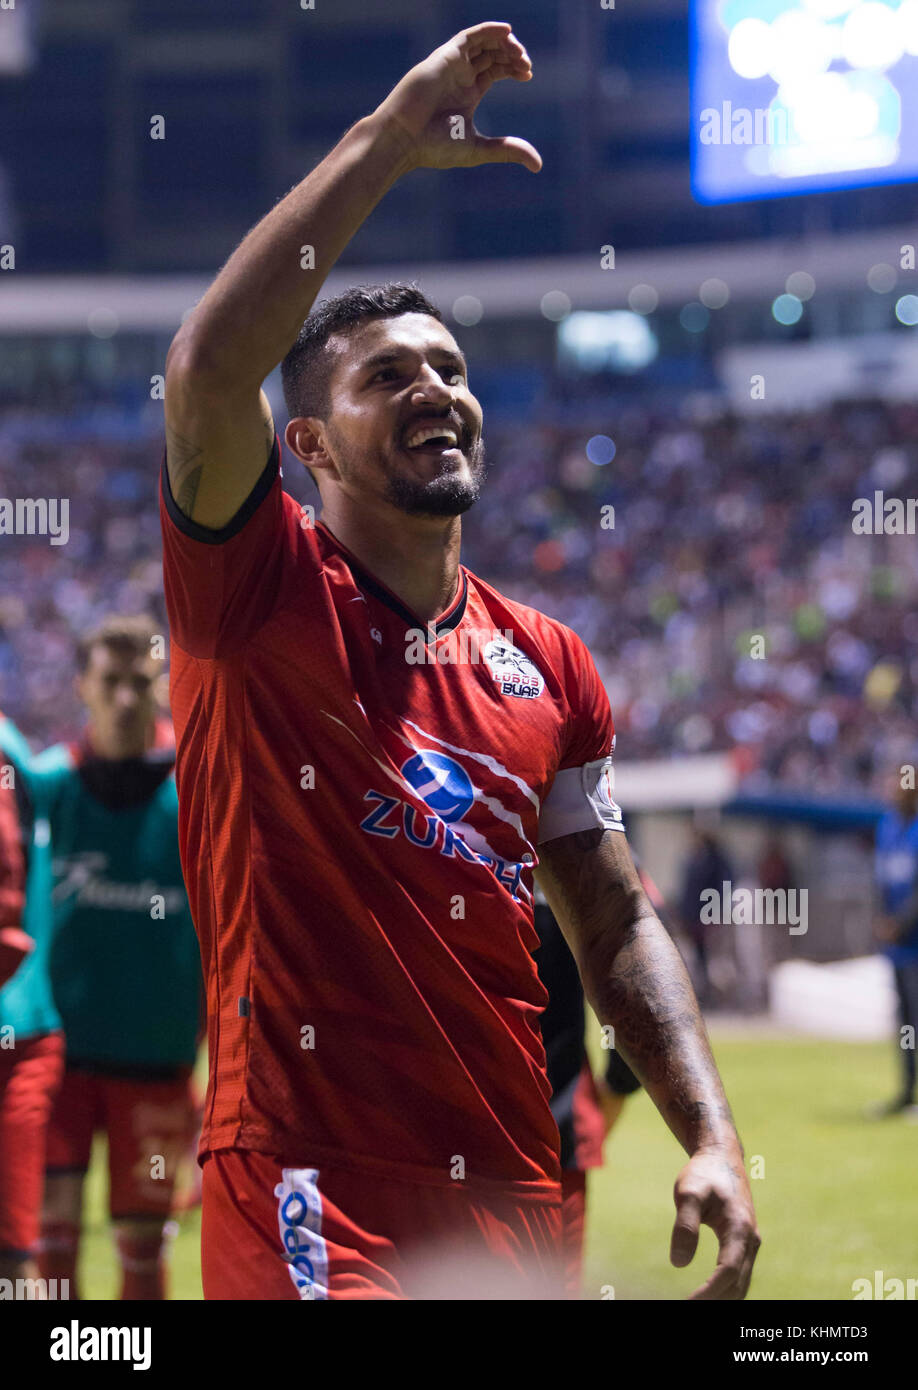 228108fc10c Lobos BUAP Javier Rodriguez celebrates after scoring a goal during the game  corresponding to day 17